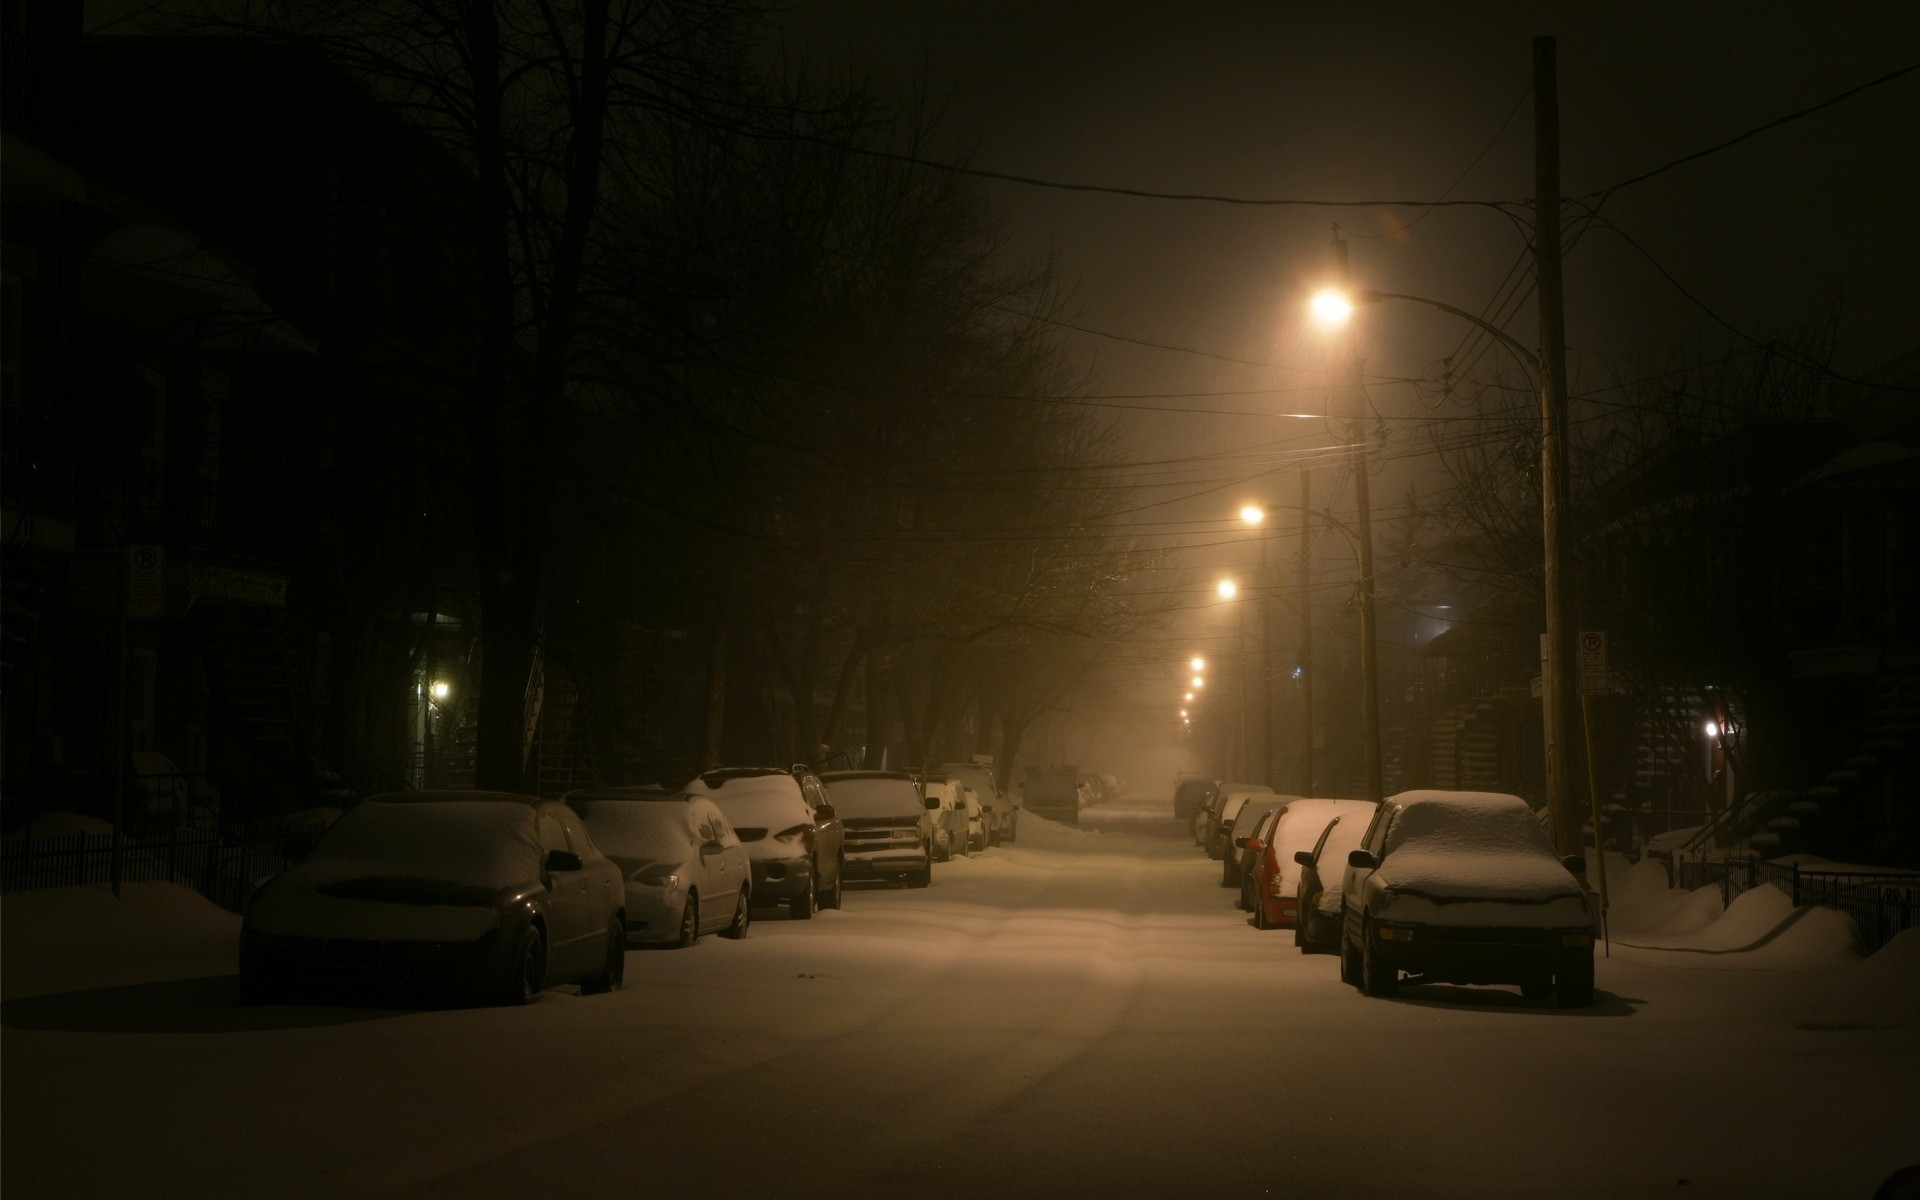 Snow Winter Cars Night Wallpaper Hd Street Montreal